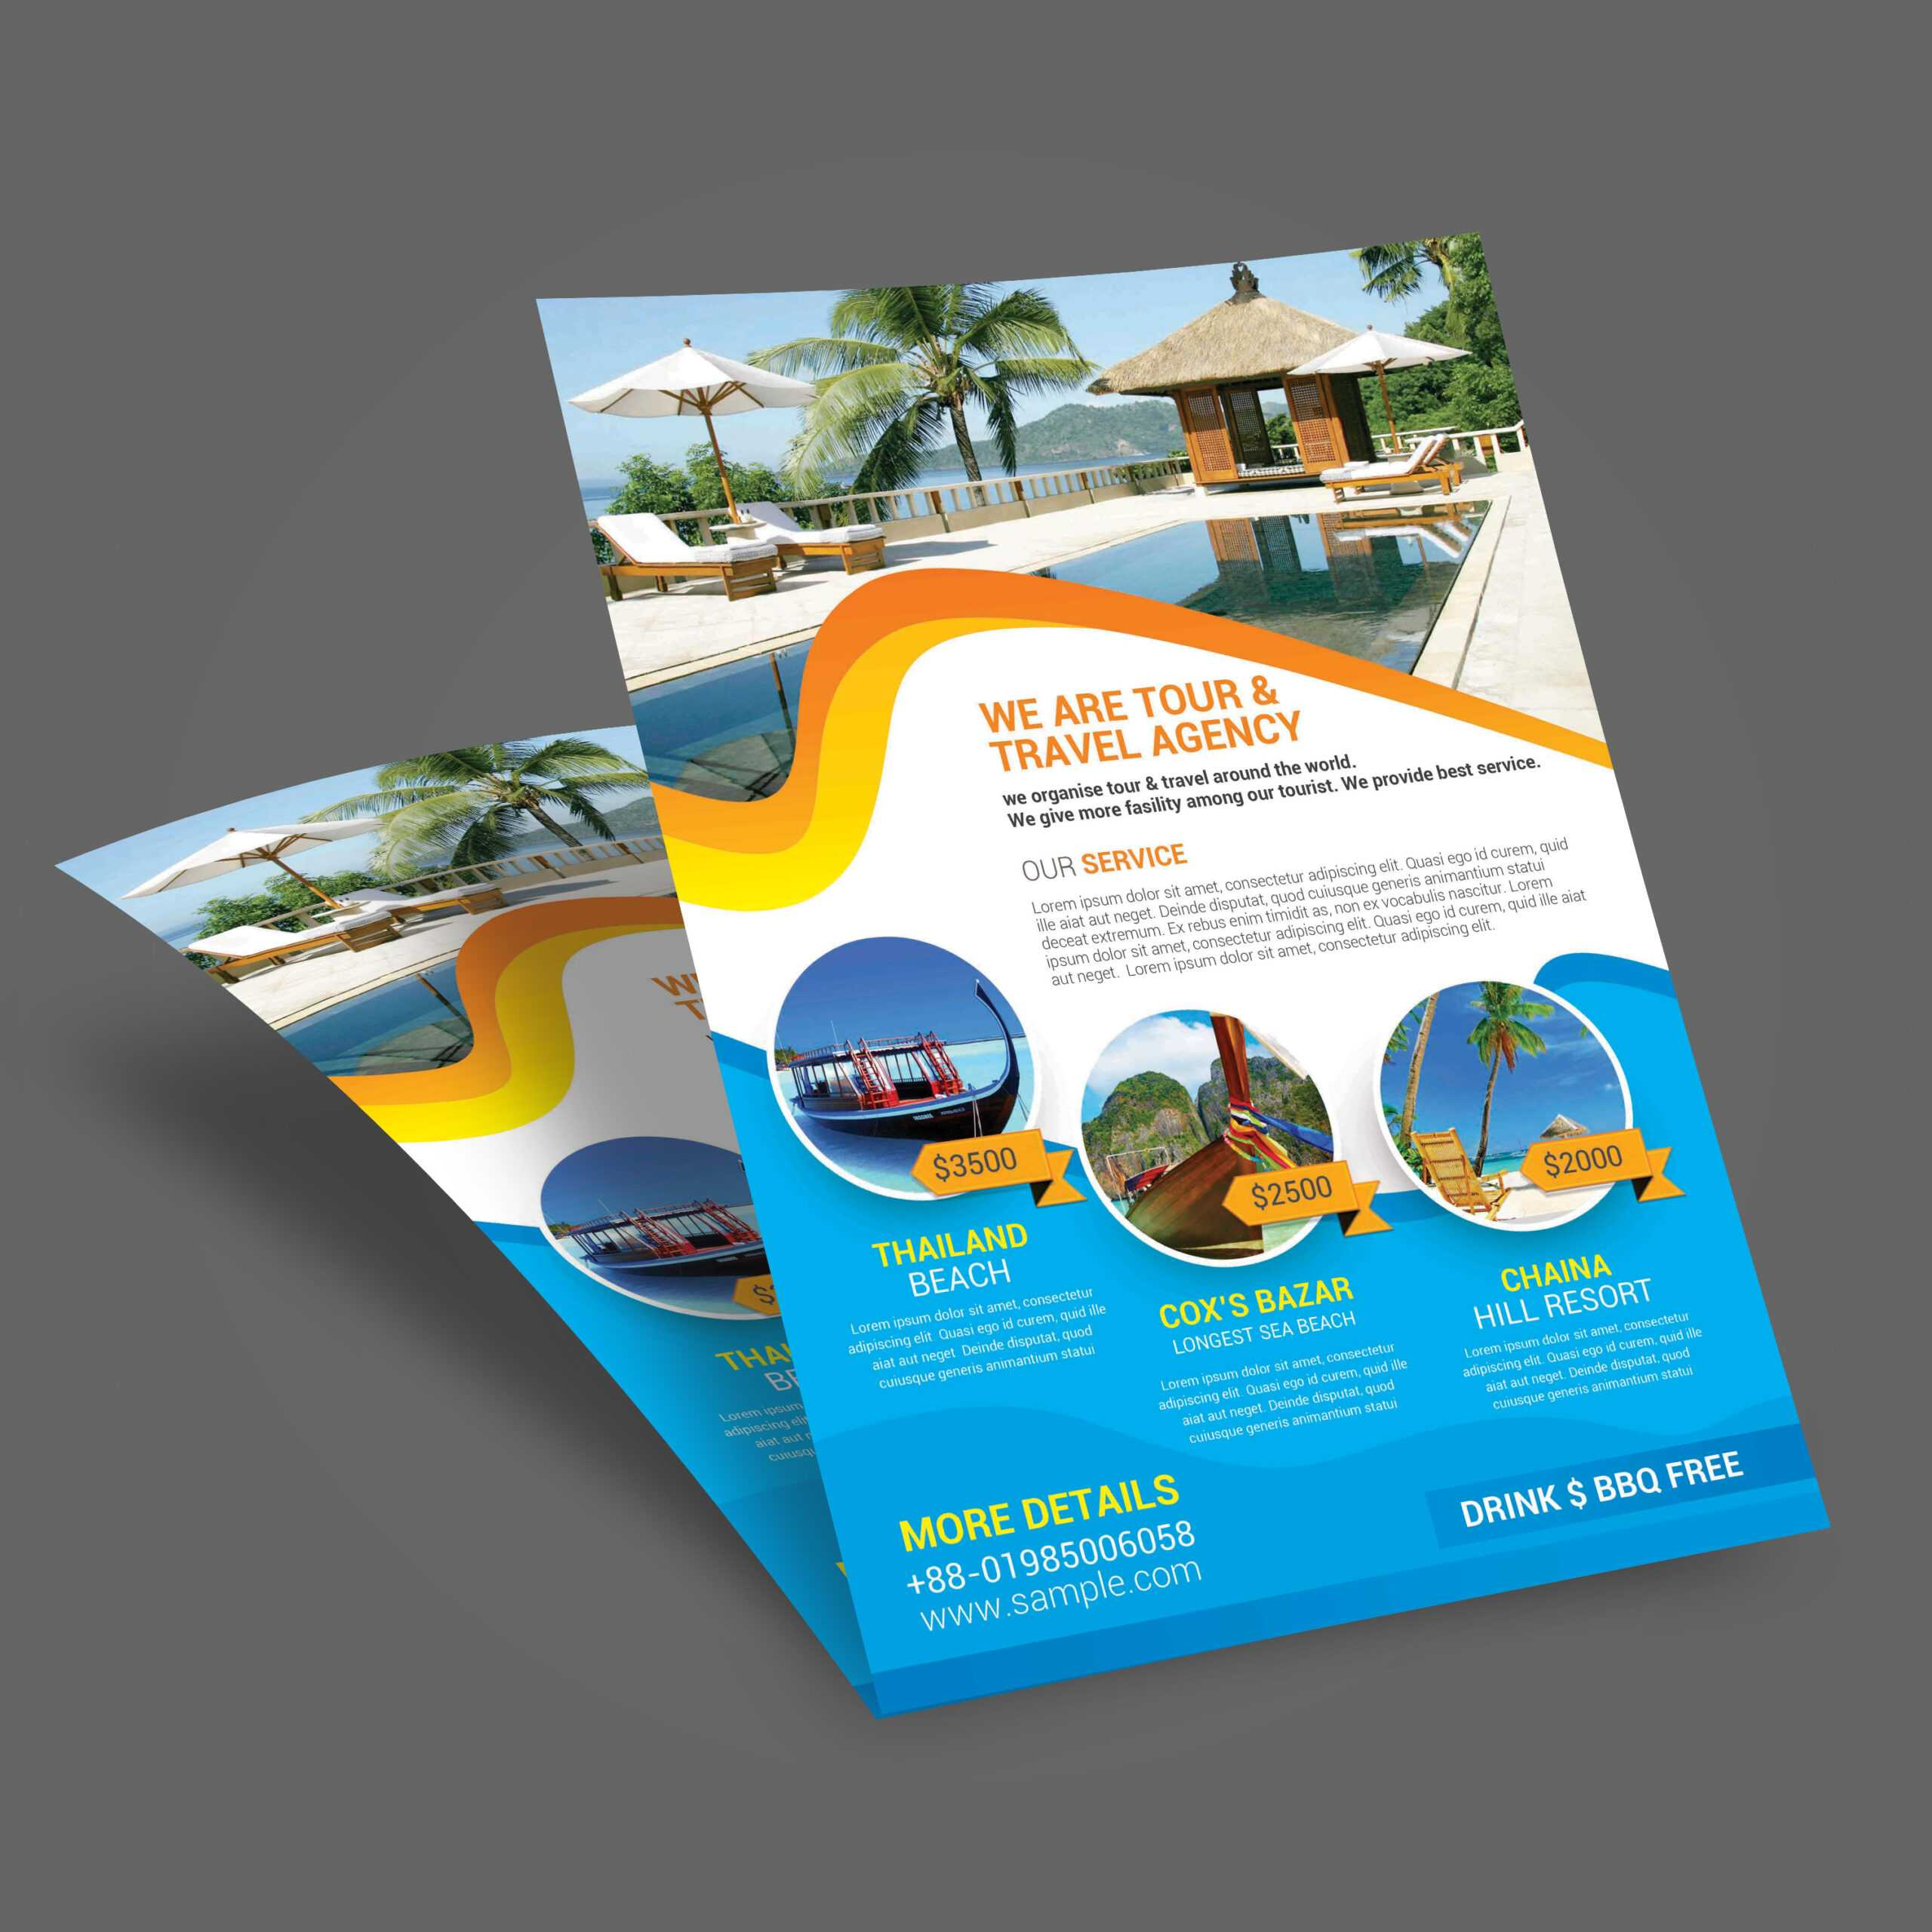 011 Template Ideas Travel Tour Flyer Brochure Templates Free With Travel And Tourism Brochure Templates Free